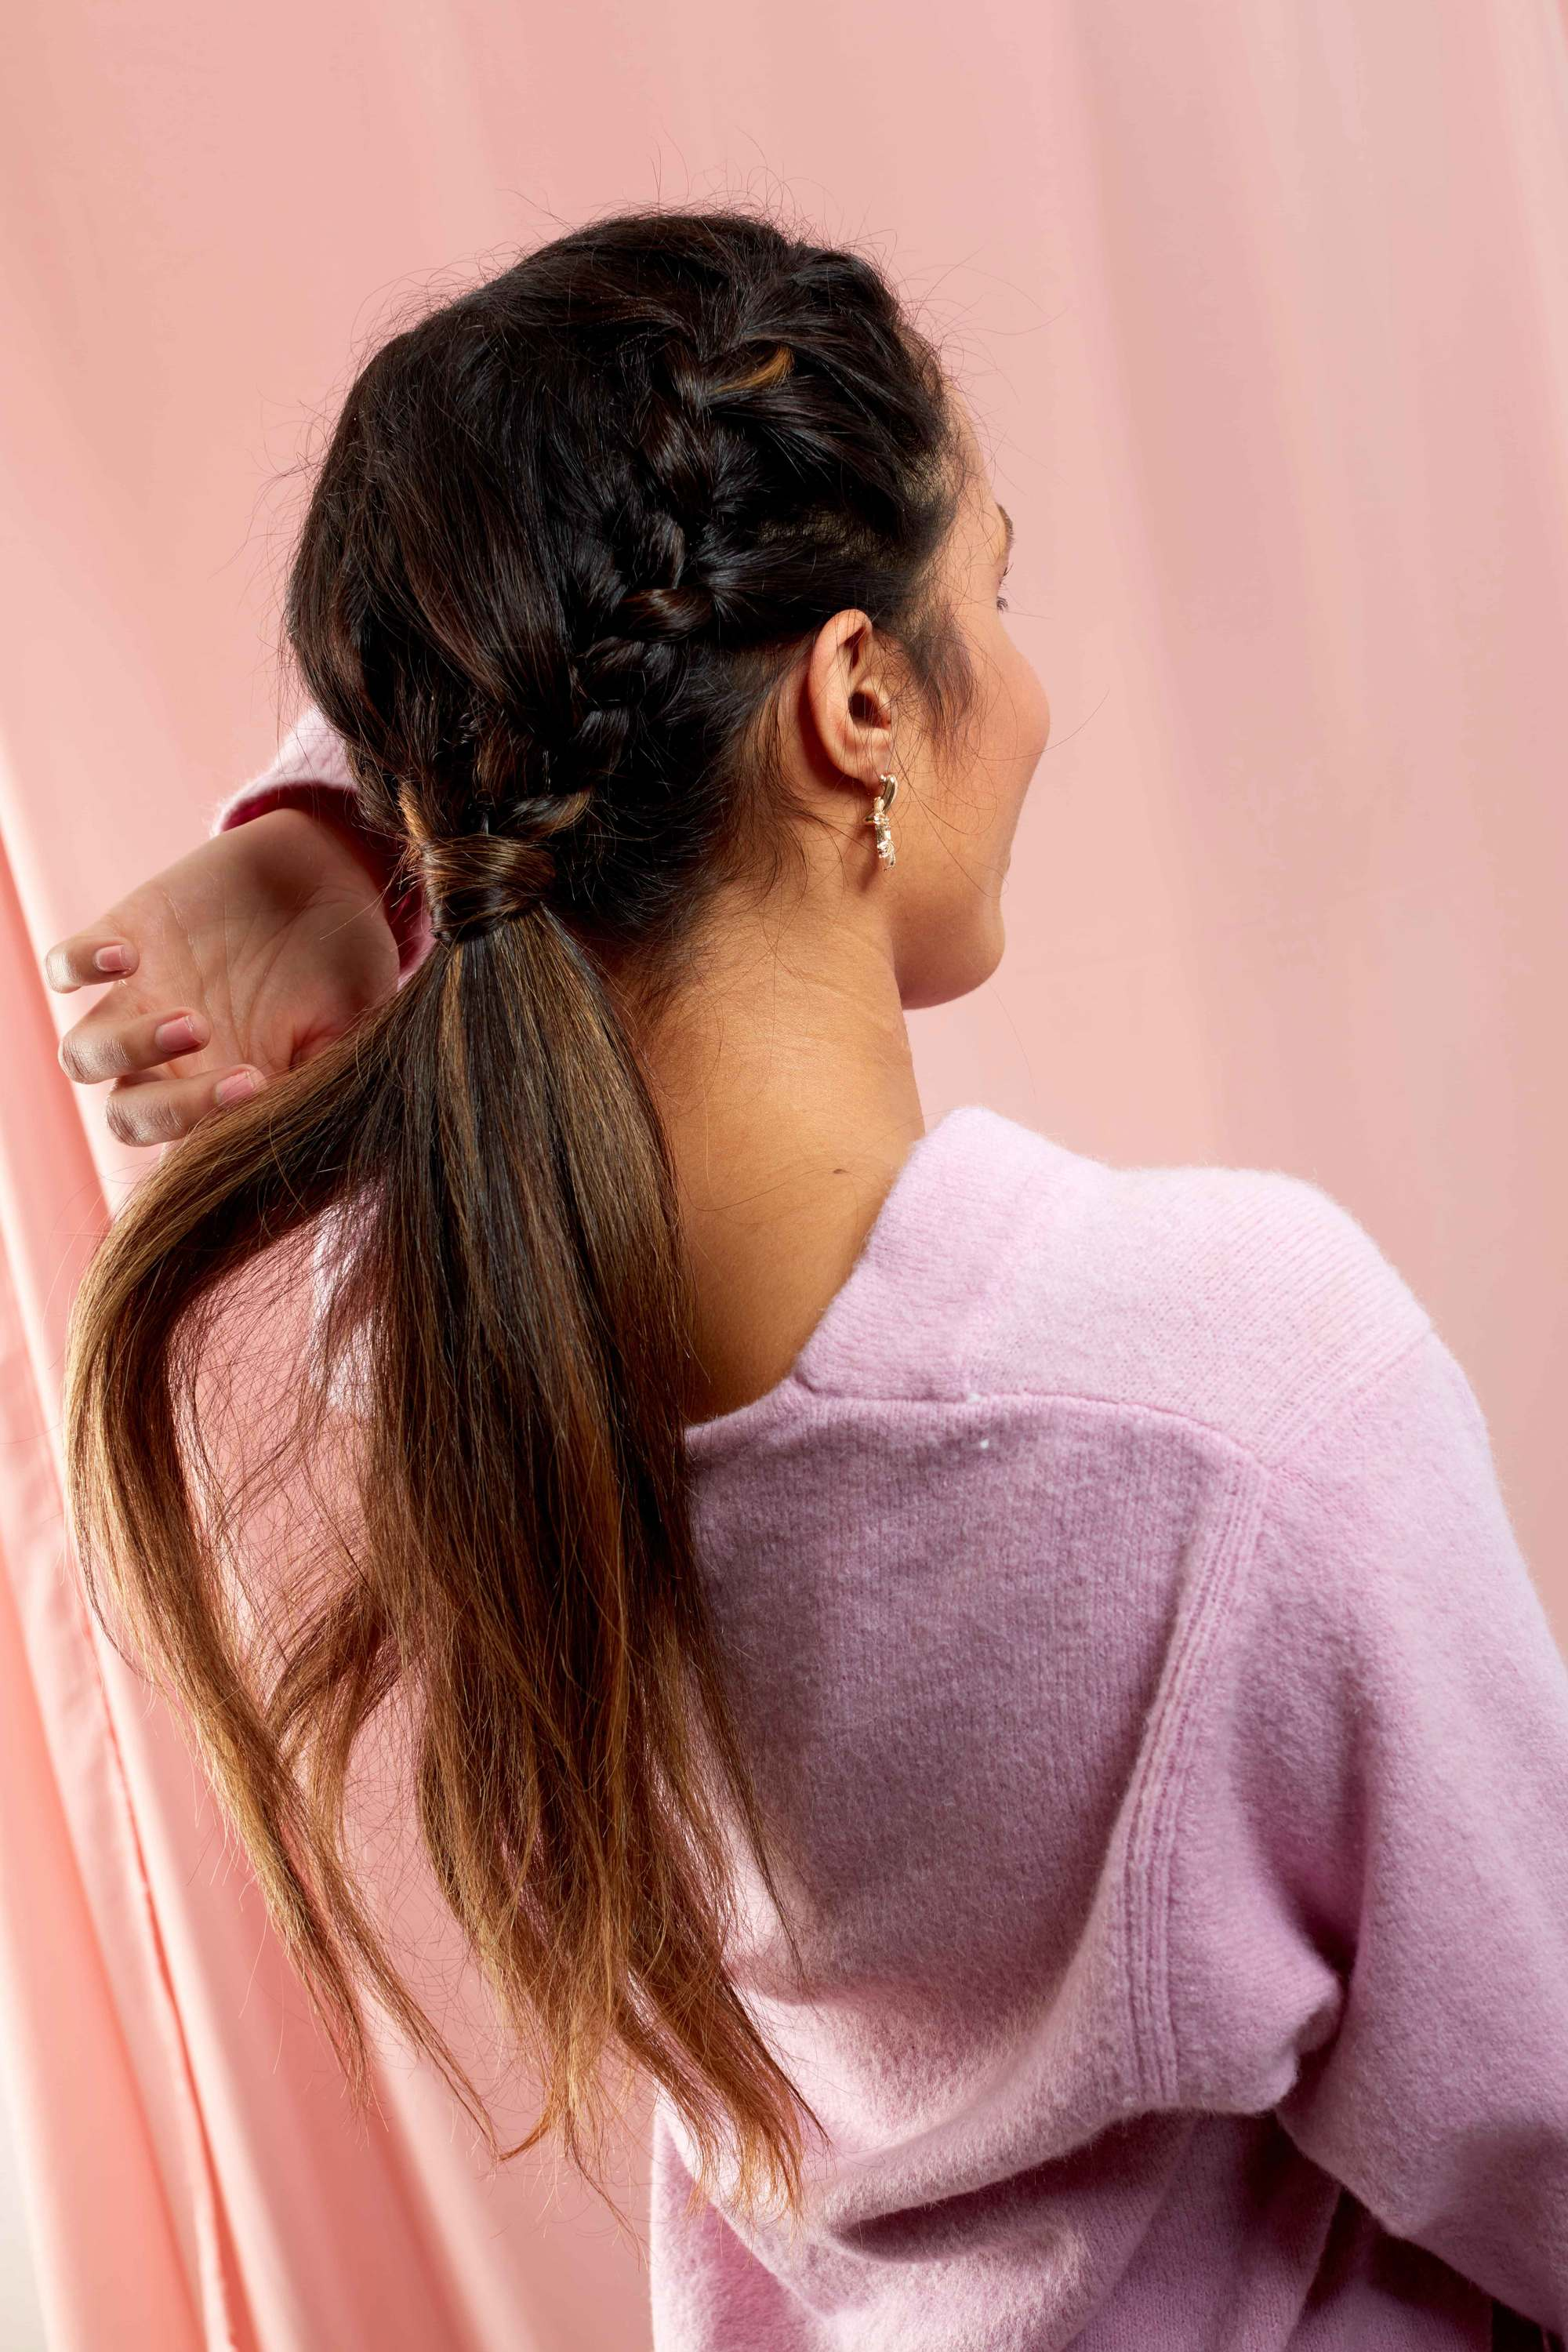 Brunette woman with long hair in a braided ponytail